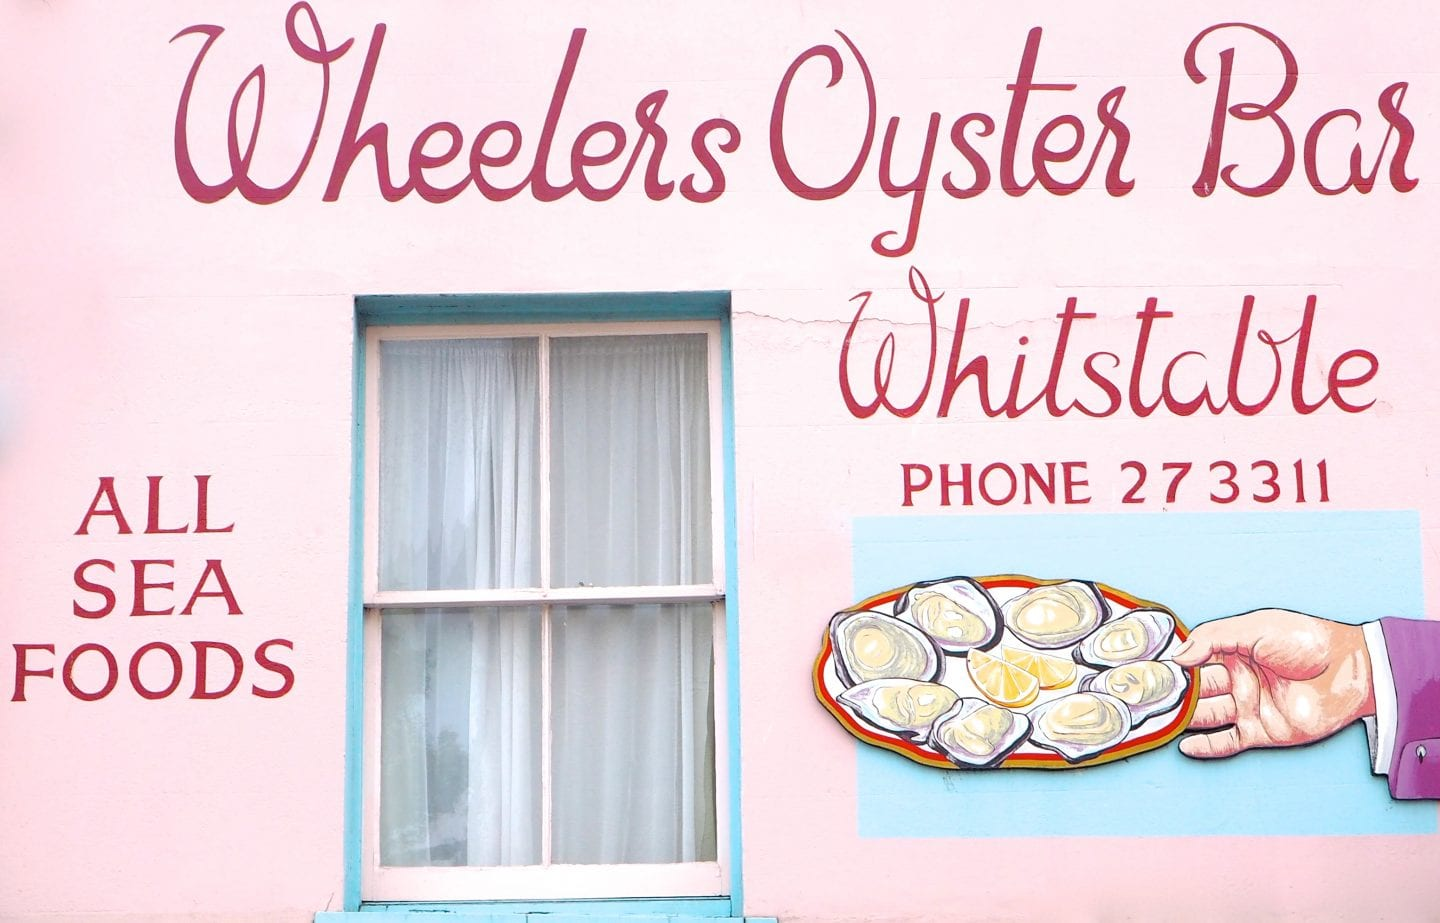 wheelers-oyster-bar-whitstable-kent